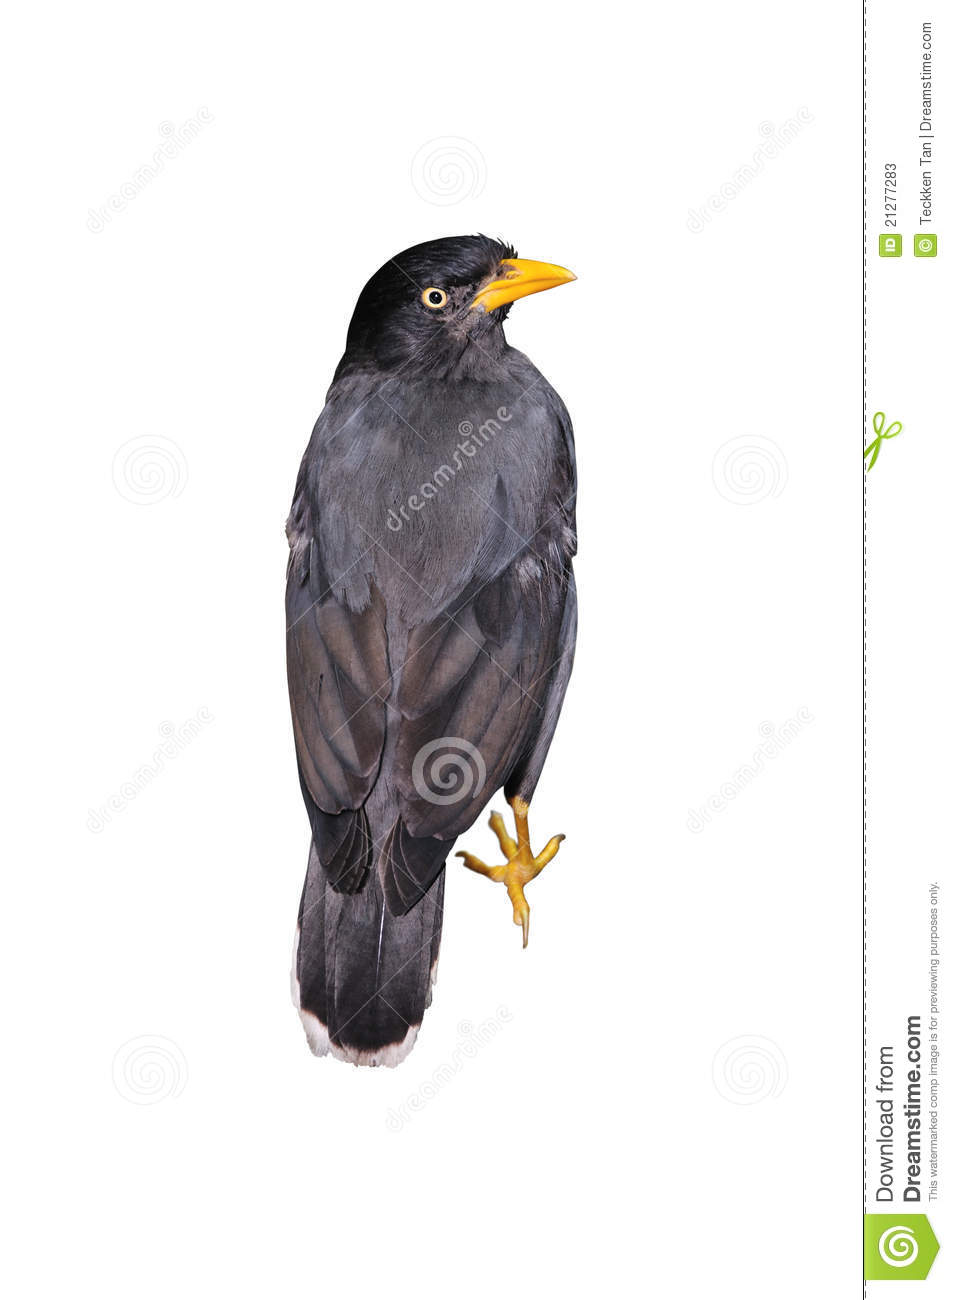 Mynah Bird Stock Photos - Image: 21277283 - photo#33